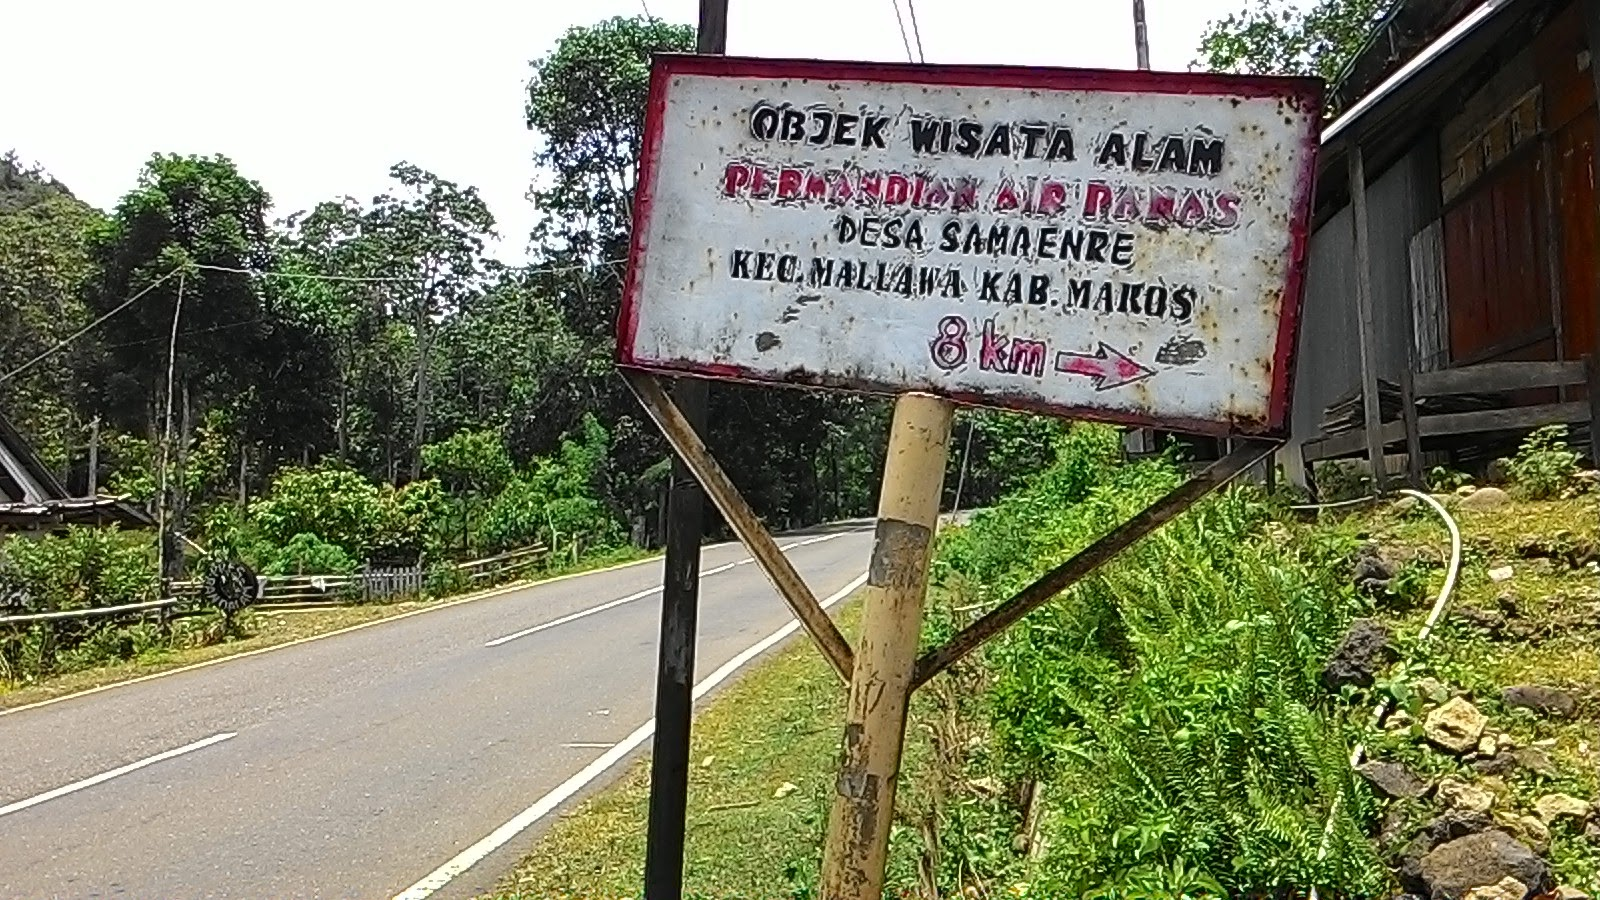 Papan Permaindian Air Panas Reatoa